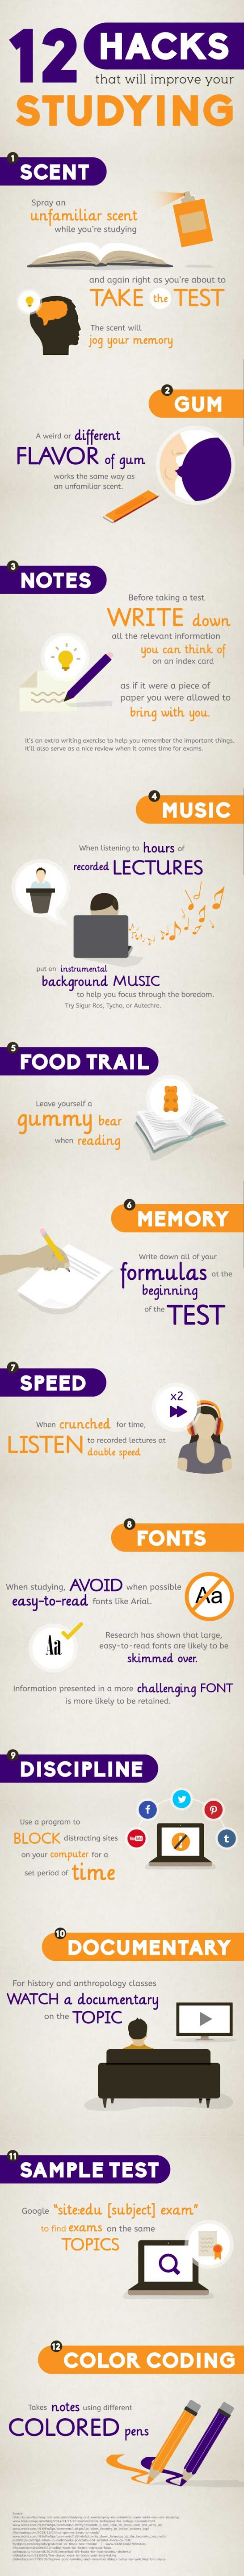 12 Hacks That Will Improve your Studying #infographic #Education #Study #infographics #Studying Hacks